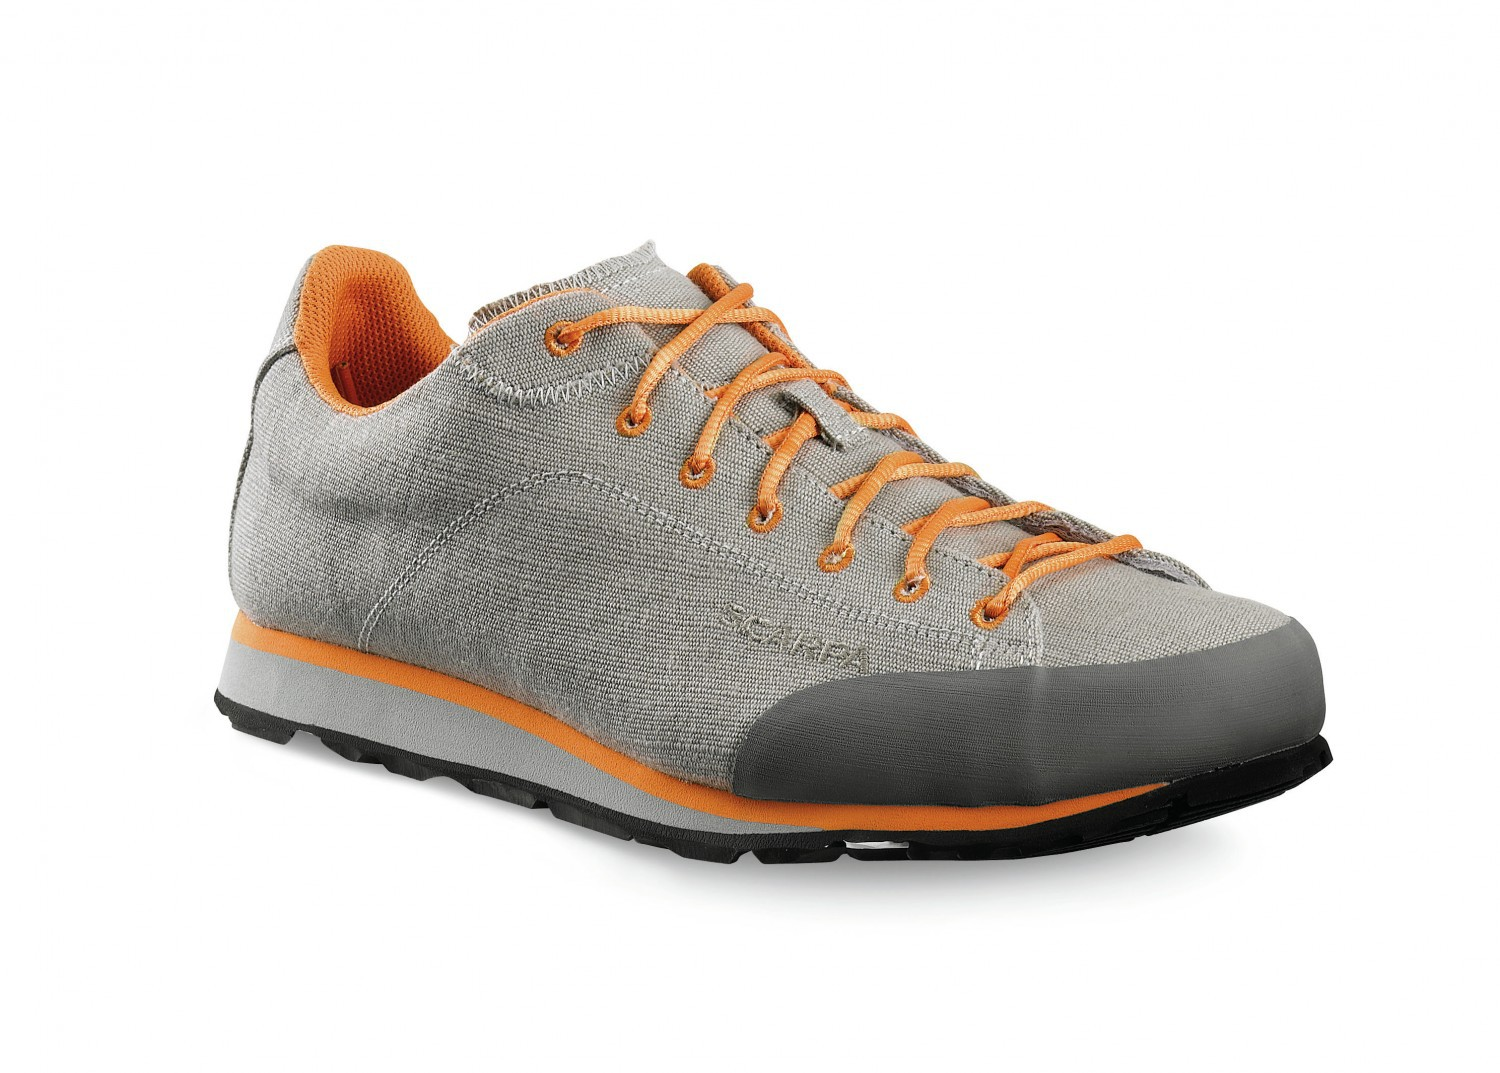 Scarpa Margarita Canvas Tan-Orange-30